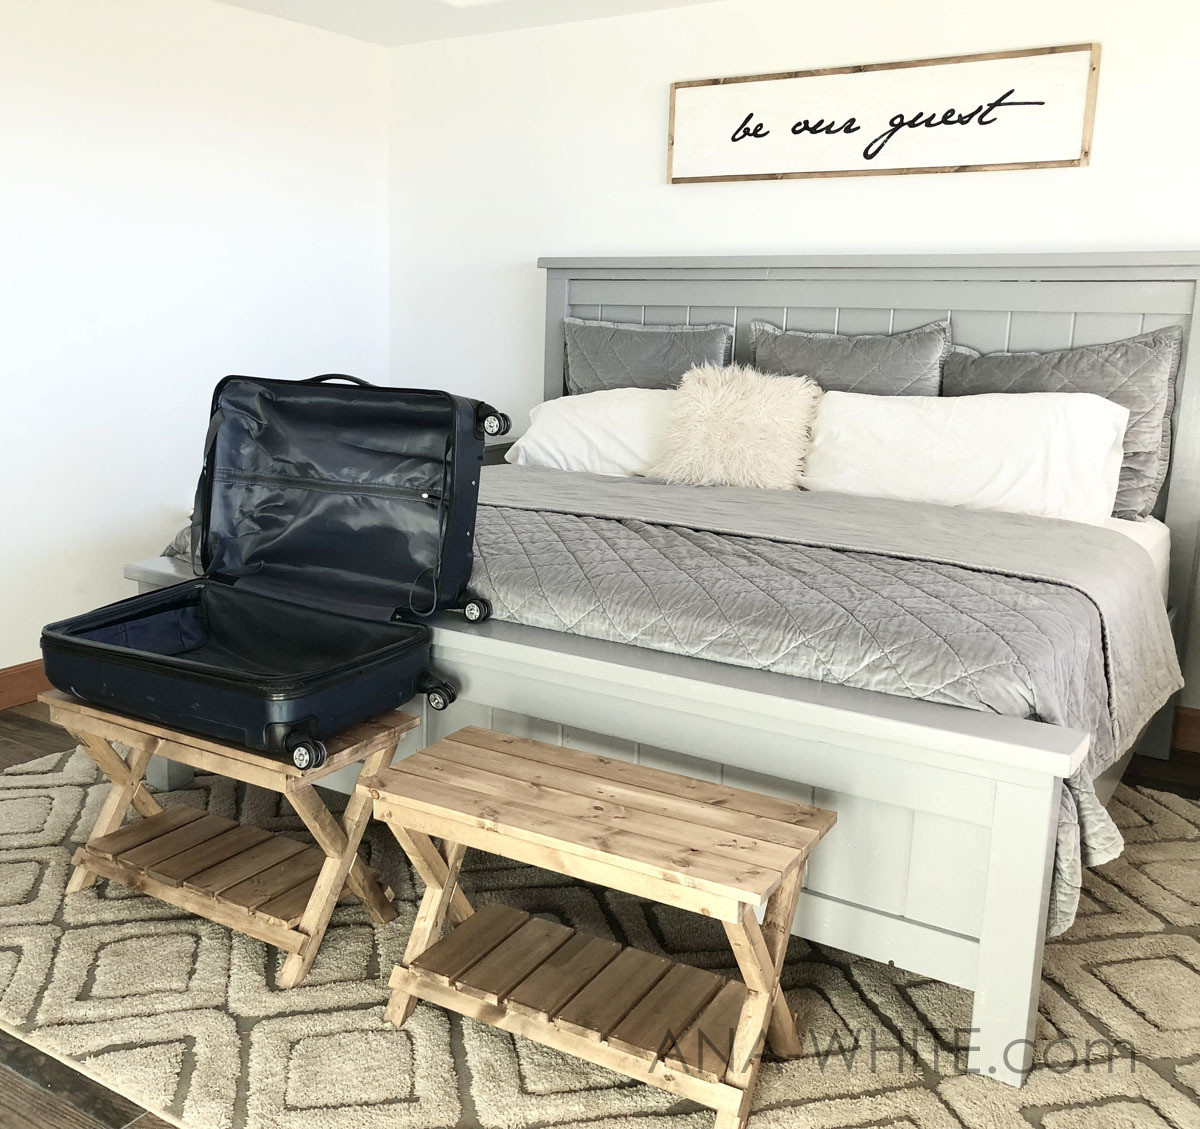 Upgraded Luggage Rack or Suitcase Stand Benches | Ana White